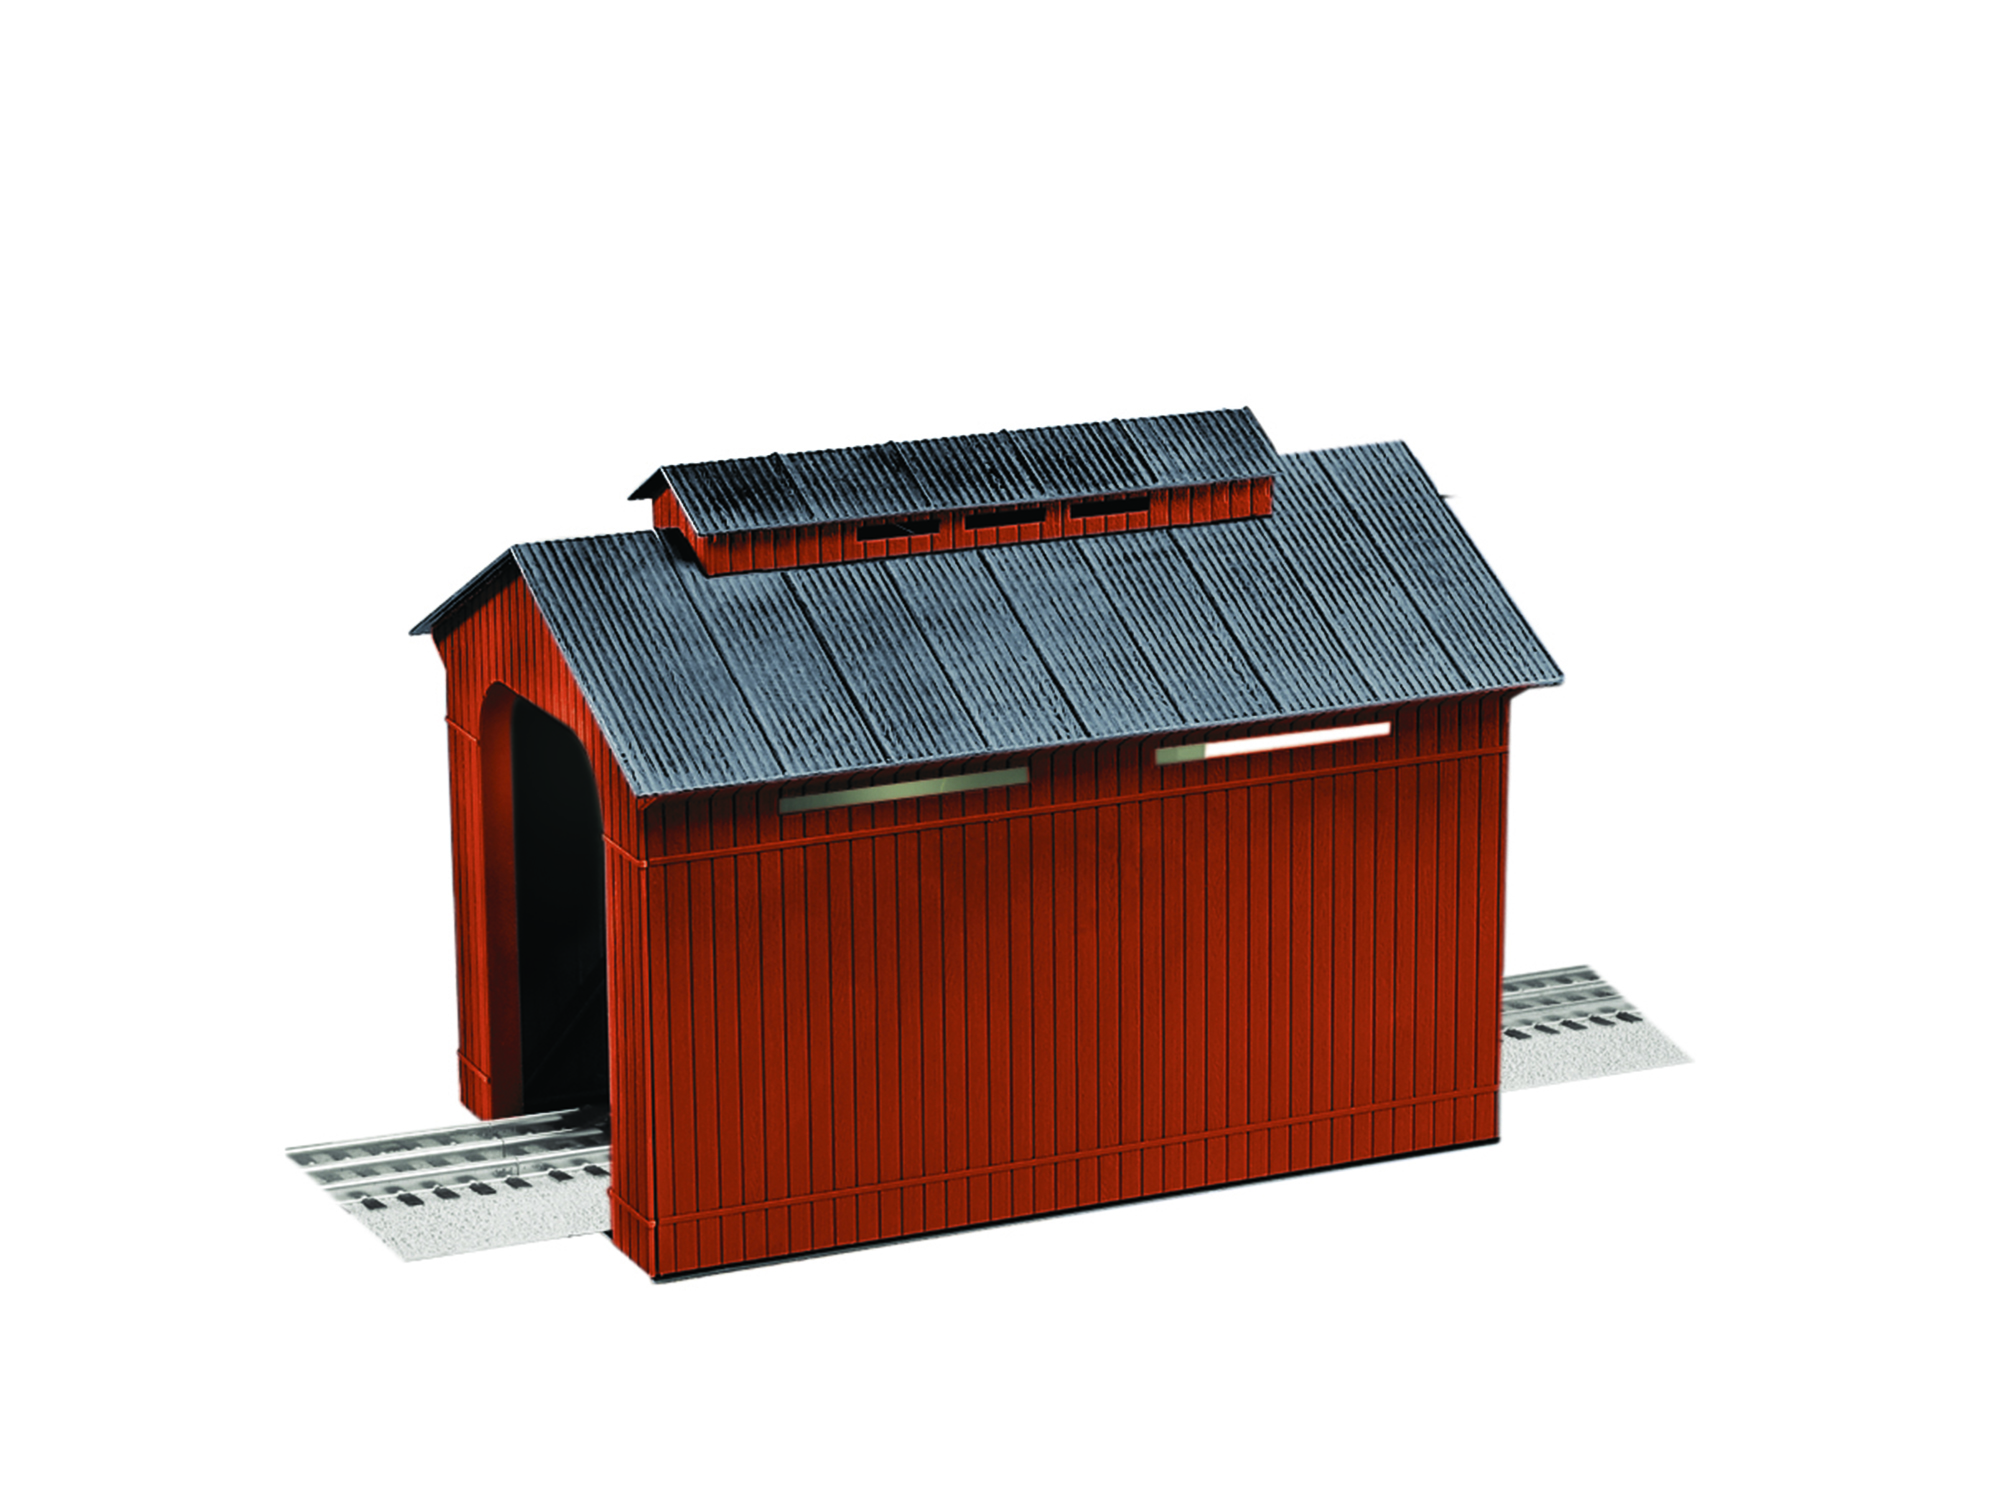 "Lionel 616882 O Covered Bridge Kit For Traditional O/O-27 & FasTrack 12 x 7-1/4 x 8"" 434-616882"